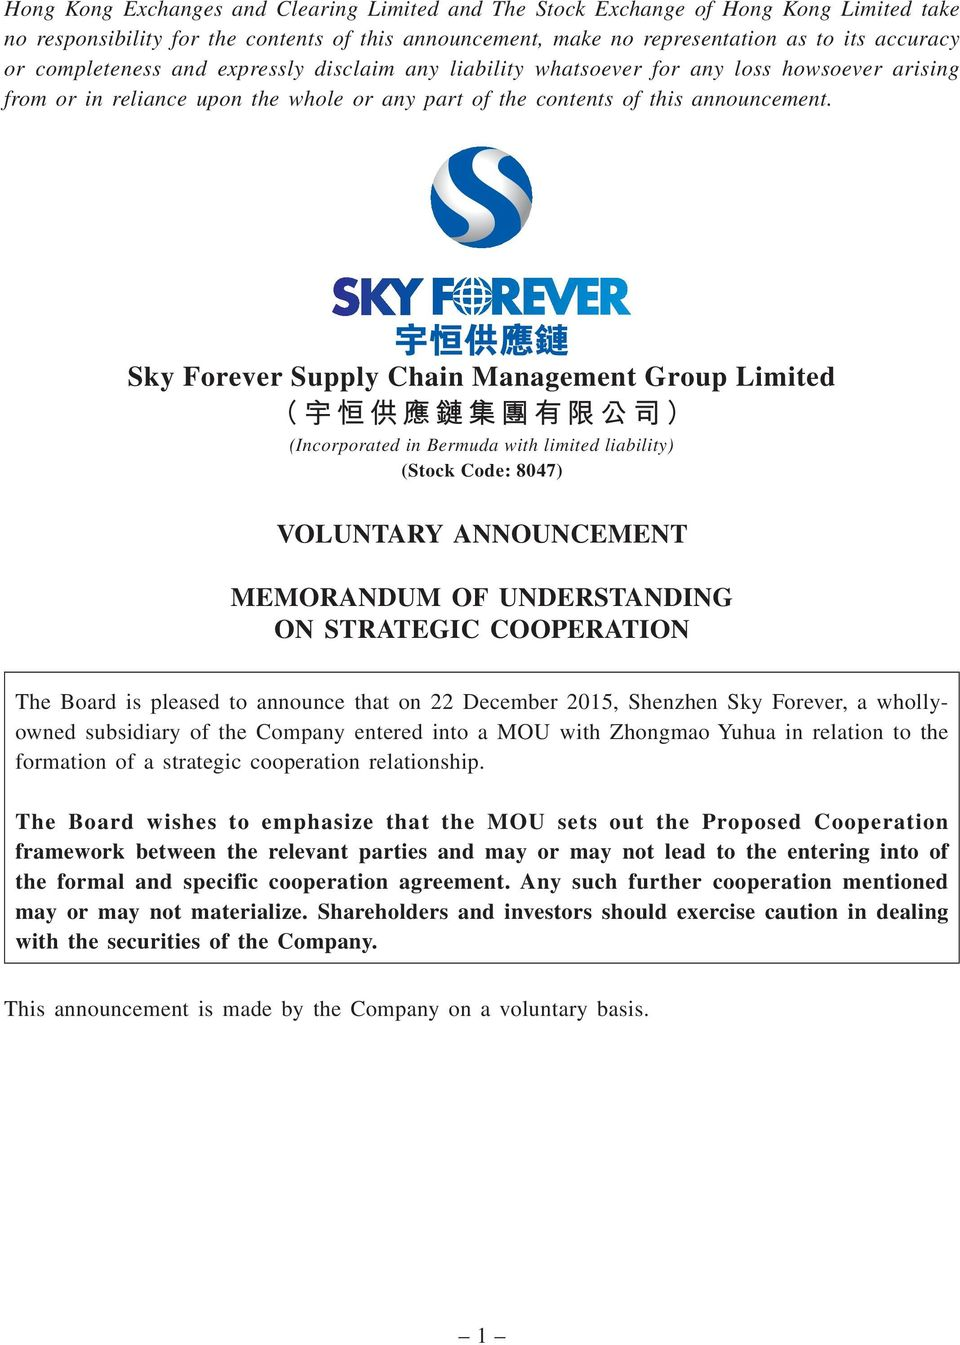 Sky Forever Supply Chain Management Group Limited (Incorporated in Bermuda with limited liability) (Stock Code: 8047) VOLUNTARY ANNOUNCEMENT MEMORANDUM OF UNDERSTANDING ON STRATEGIC COOPERATION The